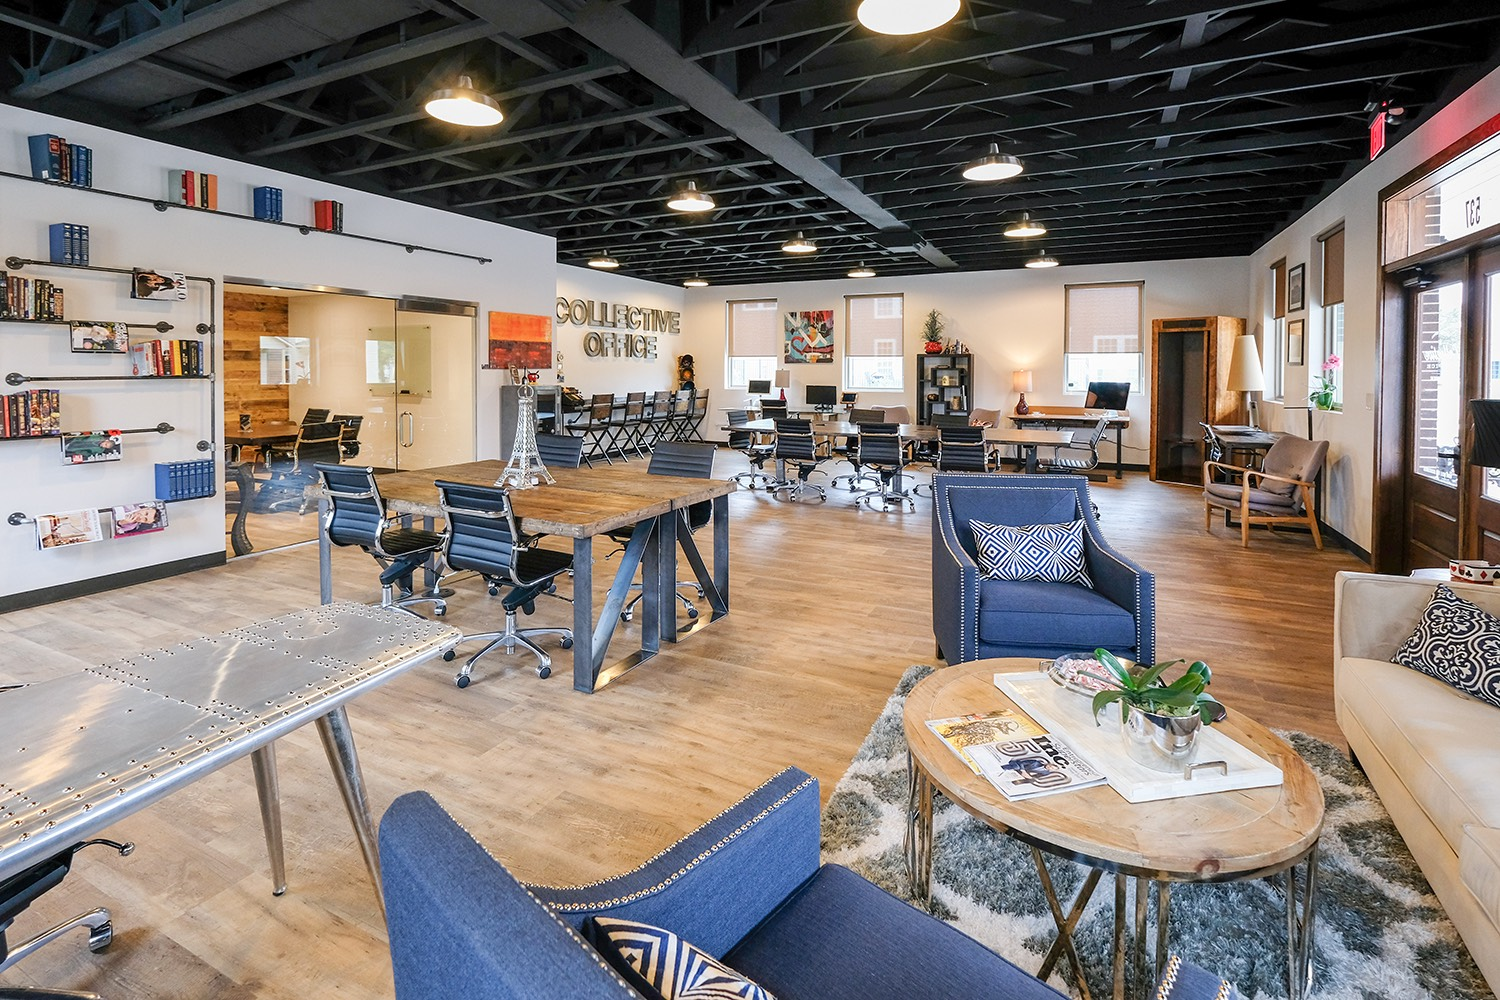 Collective Membership$225 / Month - The ultimate in flexibility.Enjoy unlimited access to our shared tables, sitting & standing desks,private phone booths and lounges plus six hours per month of conference room reservations*. Membership also includes business mailing address.Plus one time $100 initiation fee